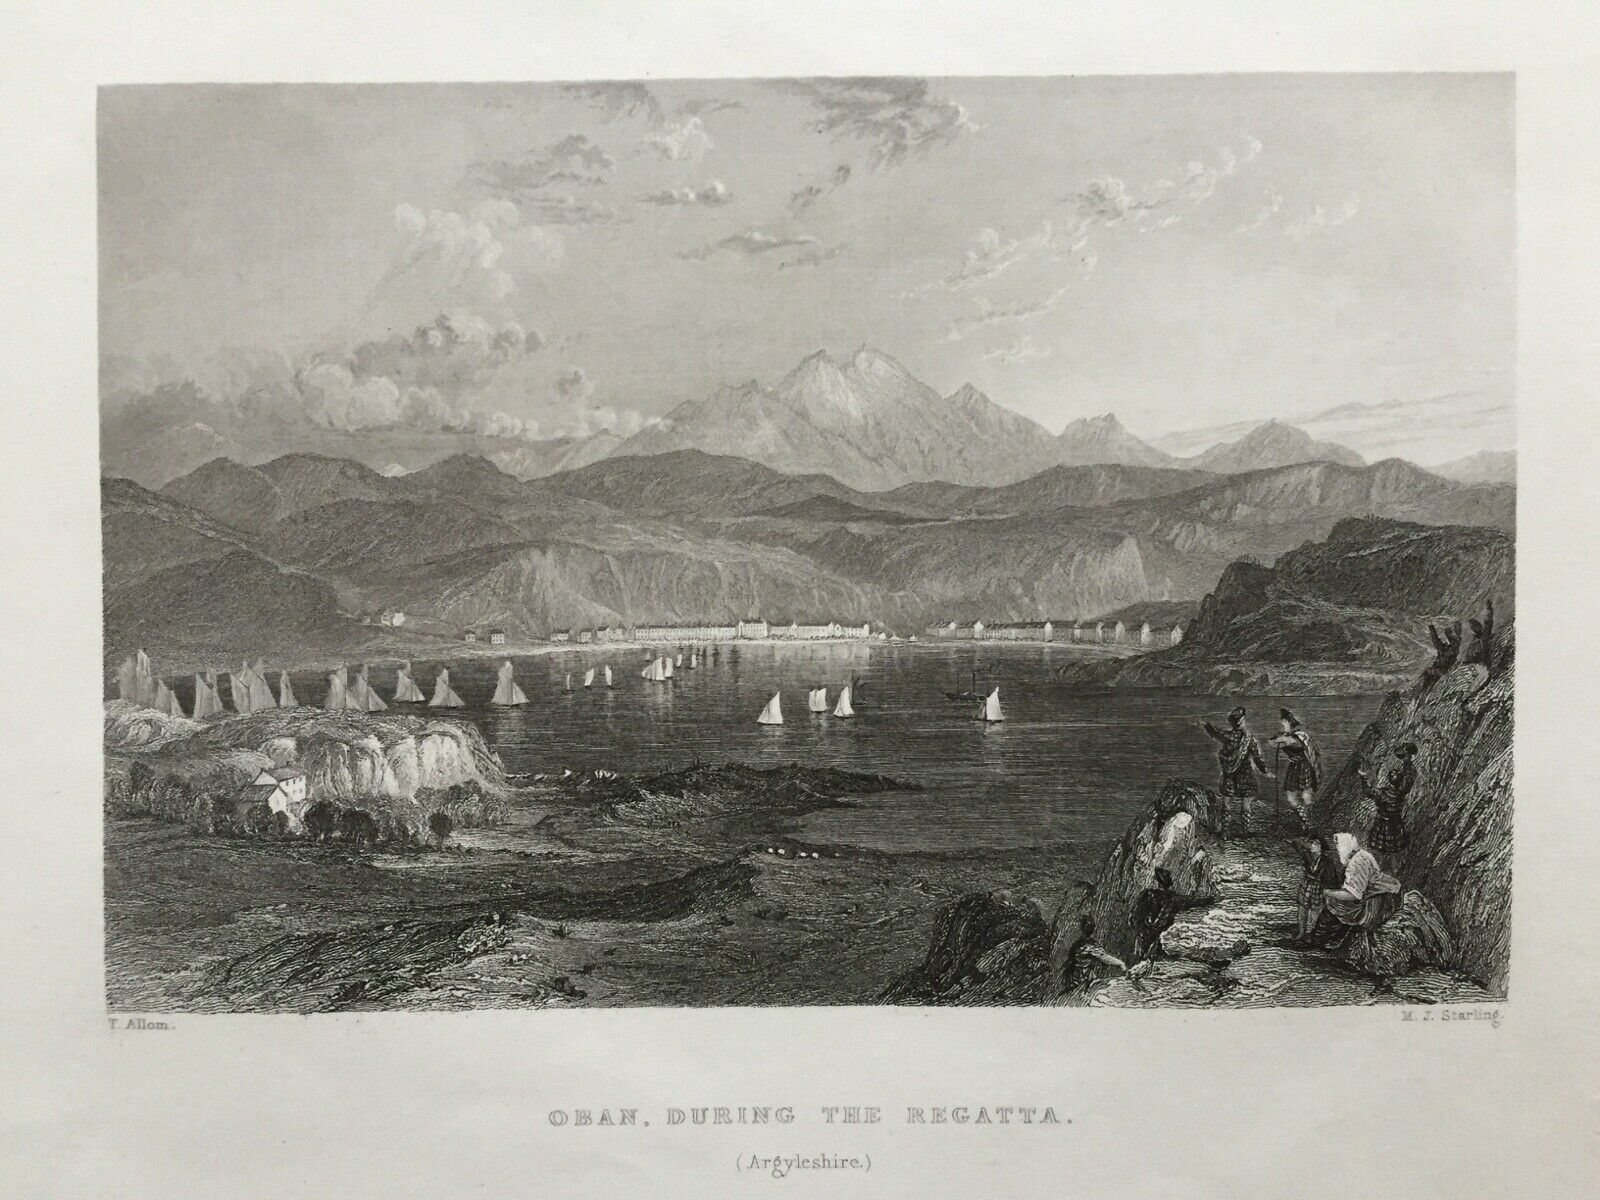 1836-Antique-Print-Oban-during-the-regatta-Argyll.jpg